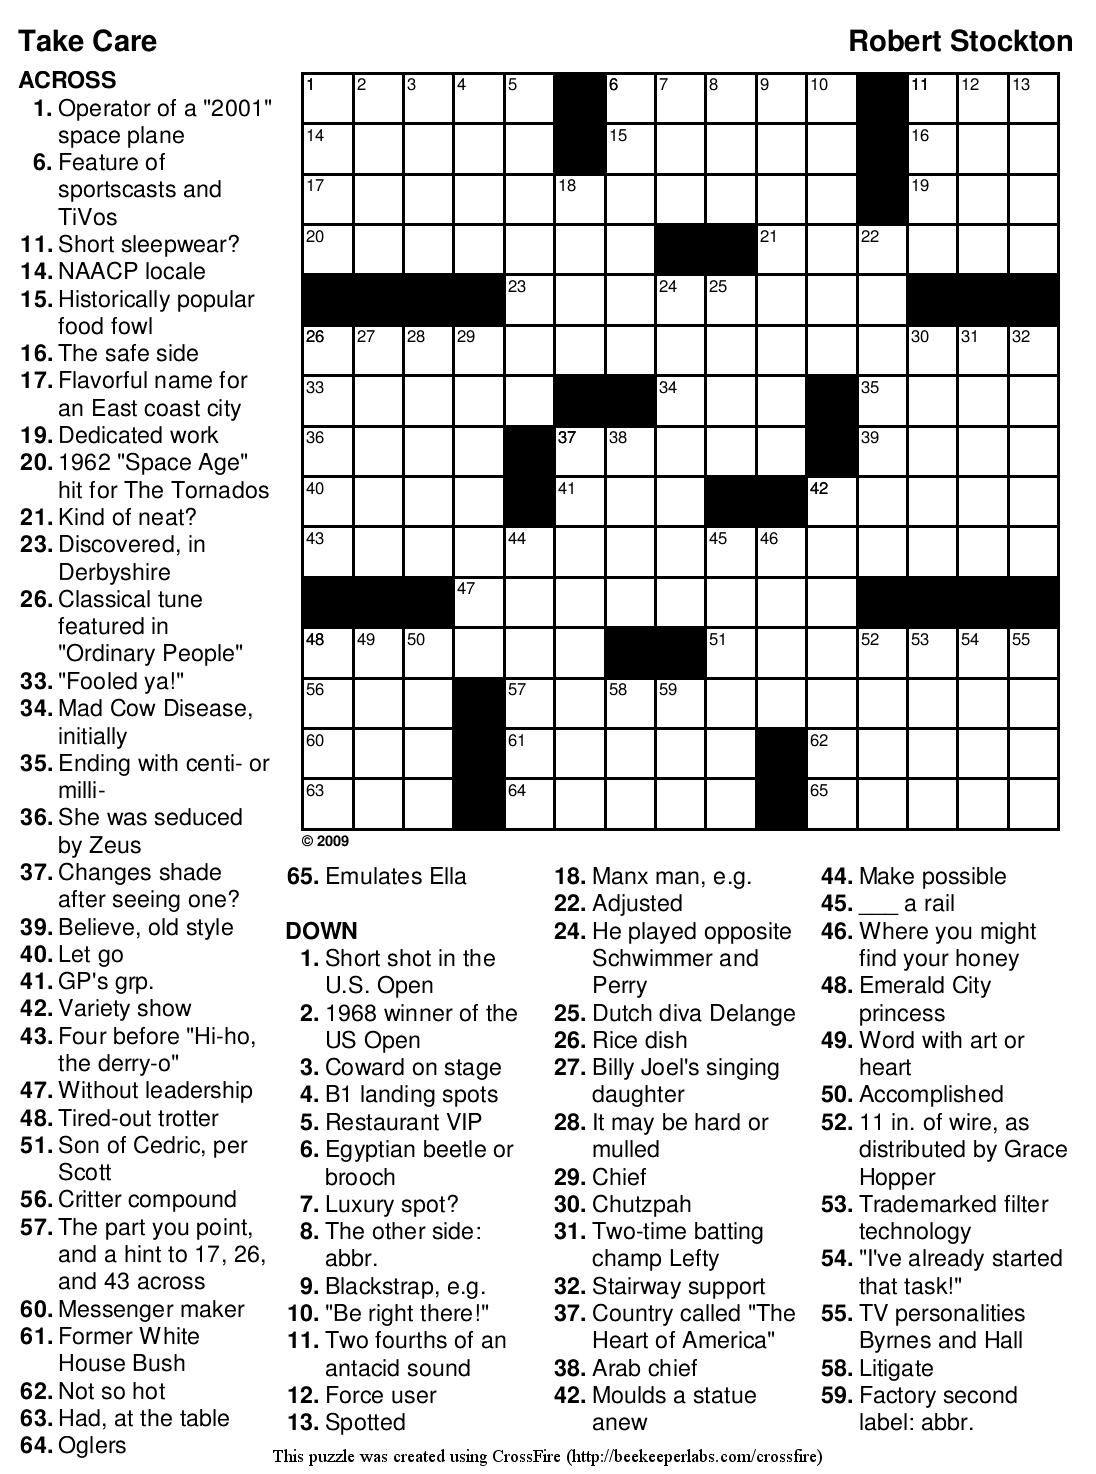 Printable Easy Sports Crossword Puzzles | Download Them Or Print - Free Printable Sports Crossword Puzzles